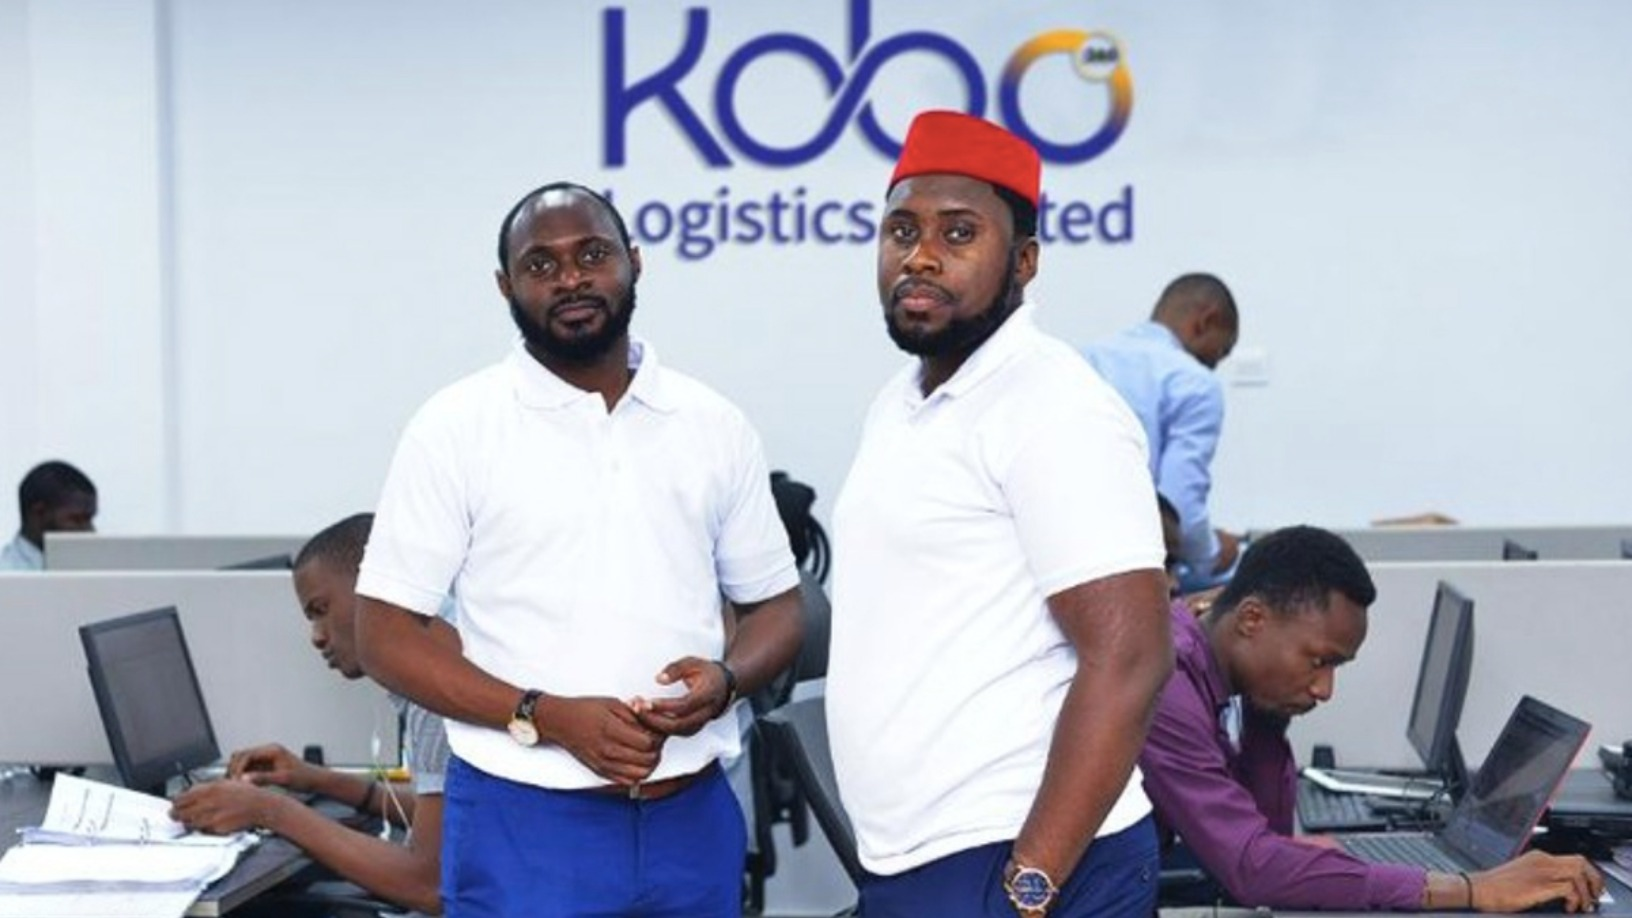 Kobo360: Nigeria's Uber-style logistics startup turns pan-African dream into reality